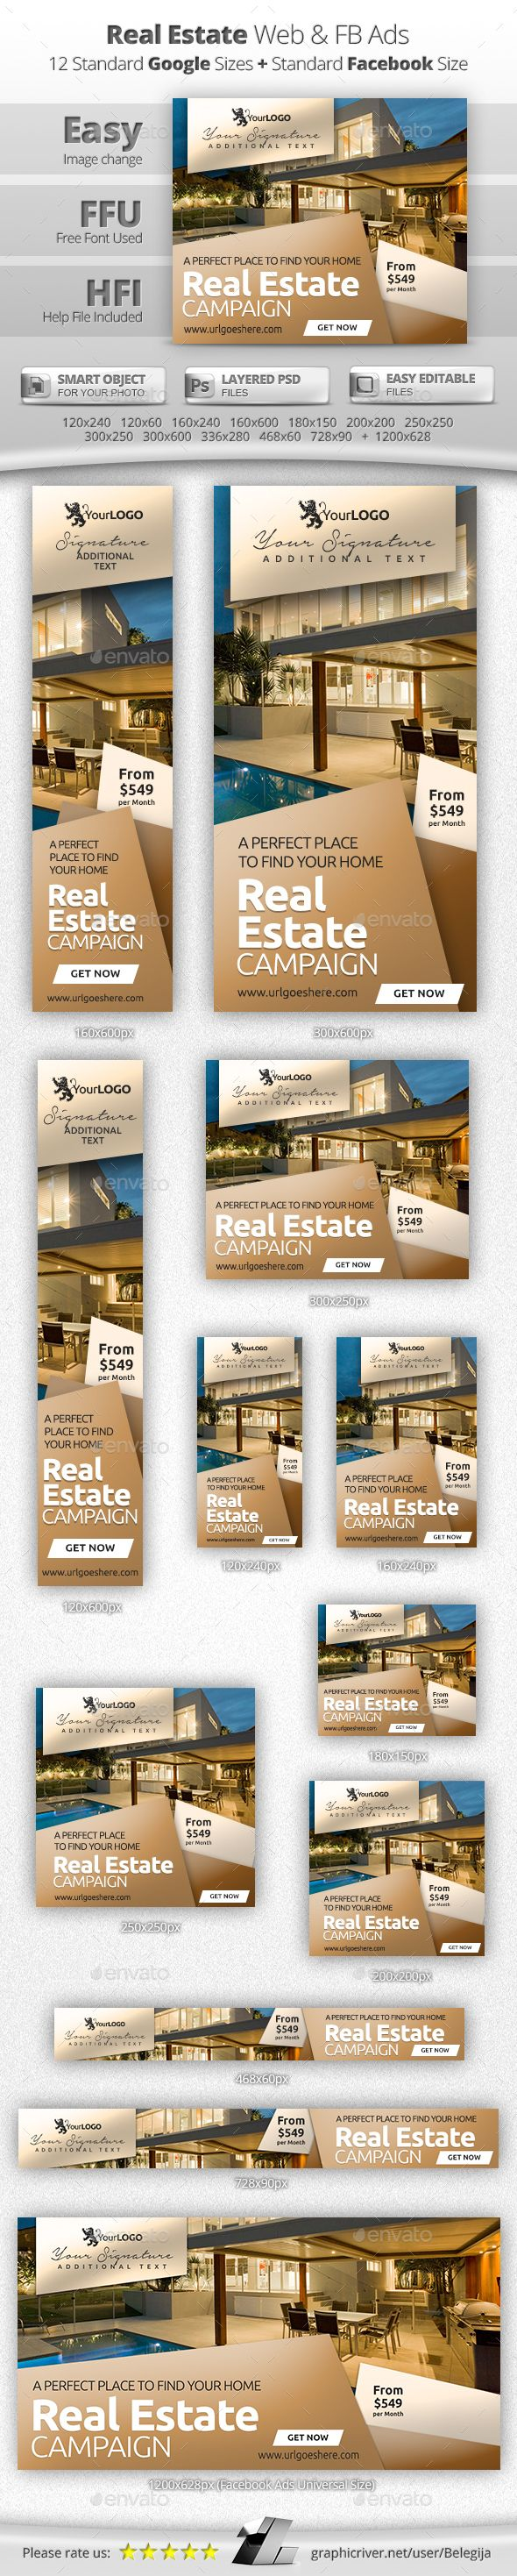 Real Estate Web & Facebook Banners Template #design #web Download: http://graphicriver.net/item/real-estate-web-facebook-banners/13108672?ref=ksioks